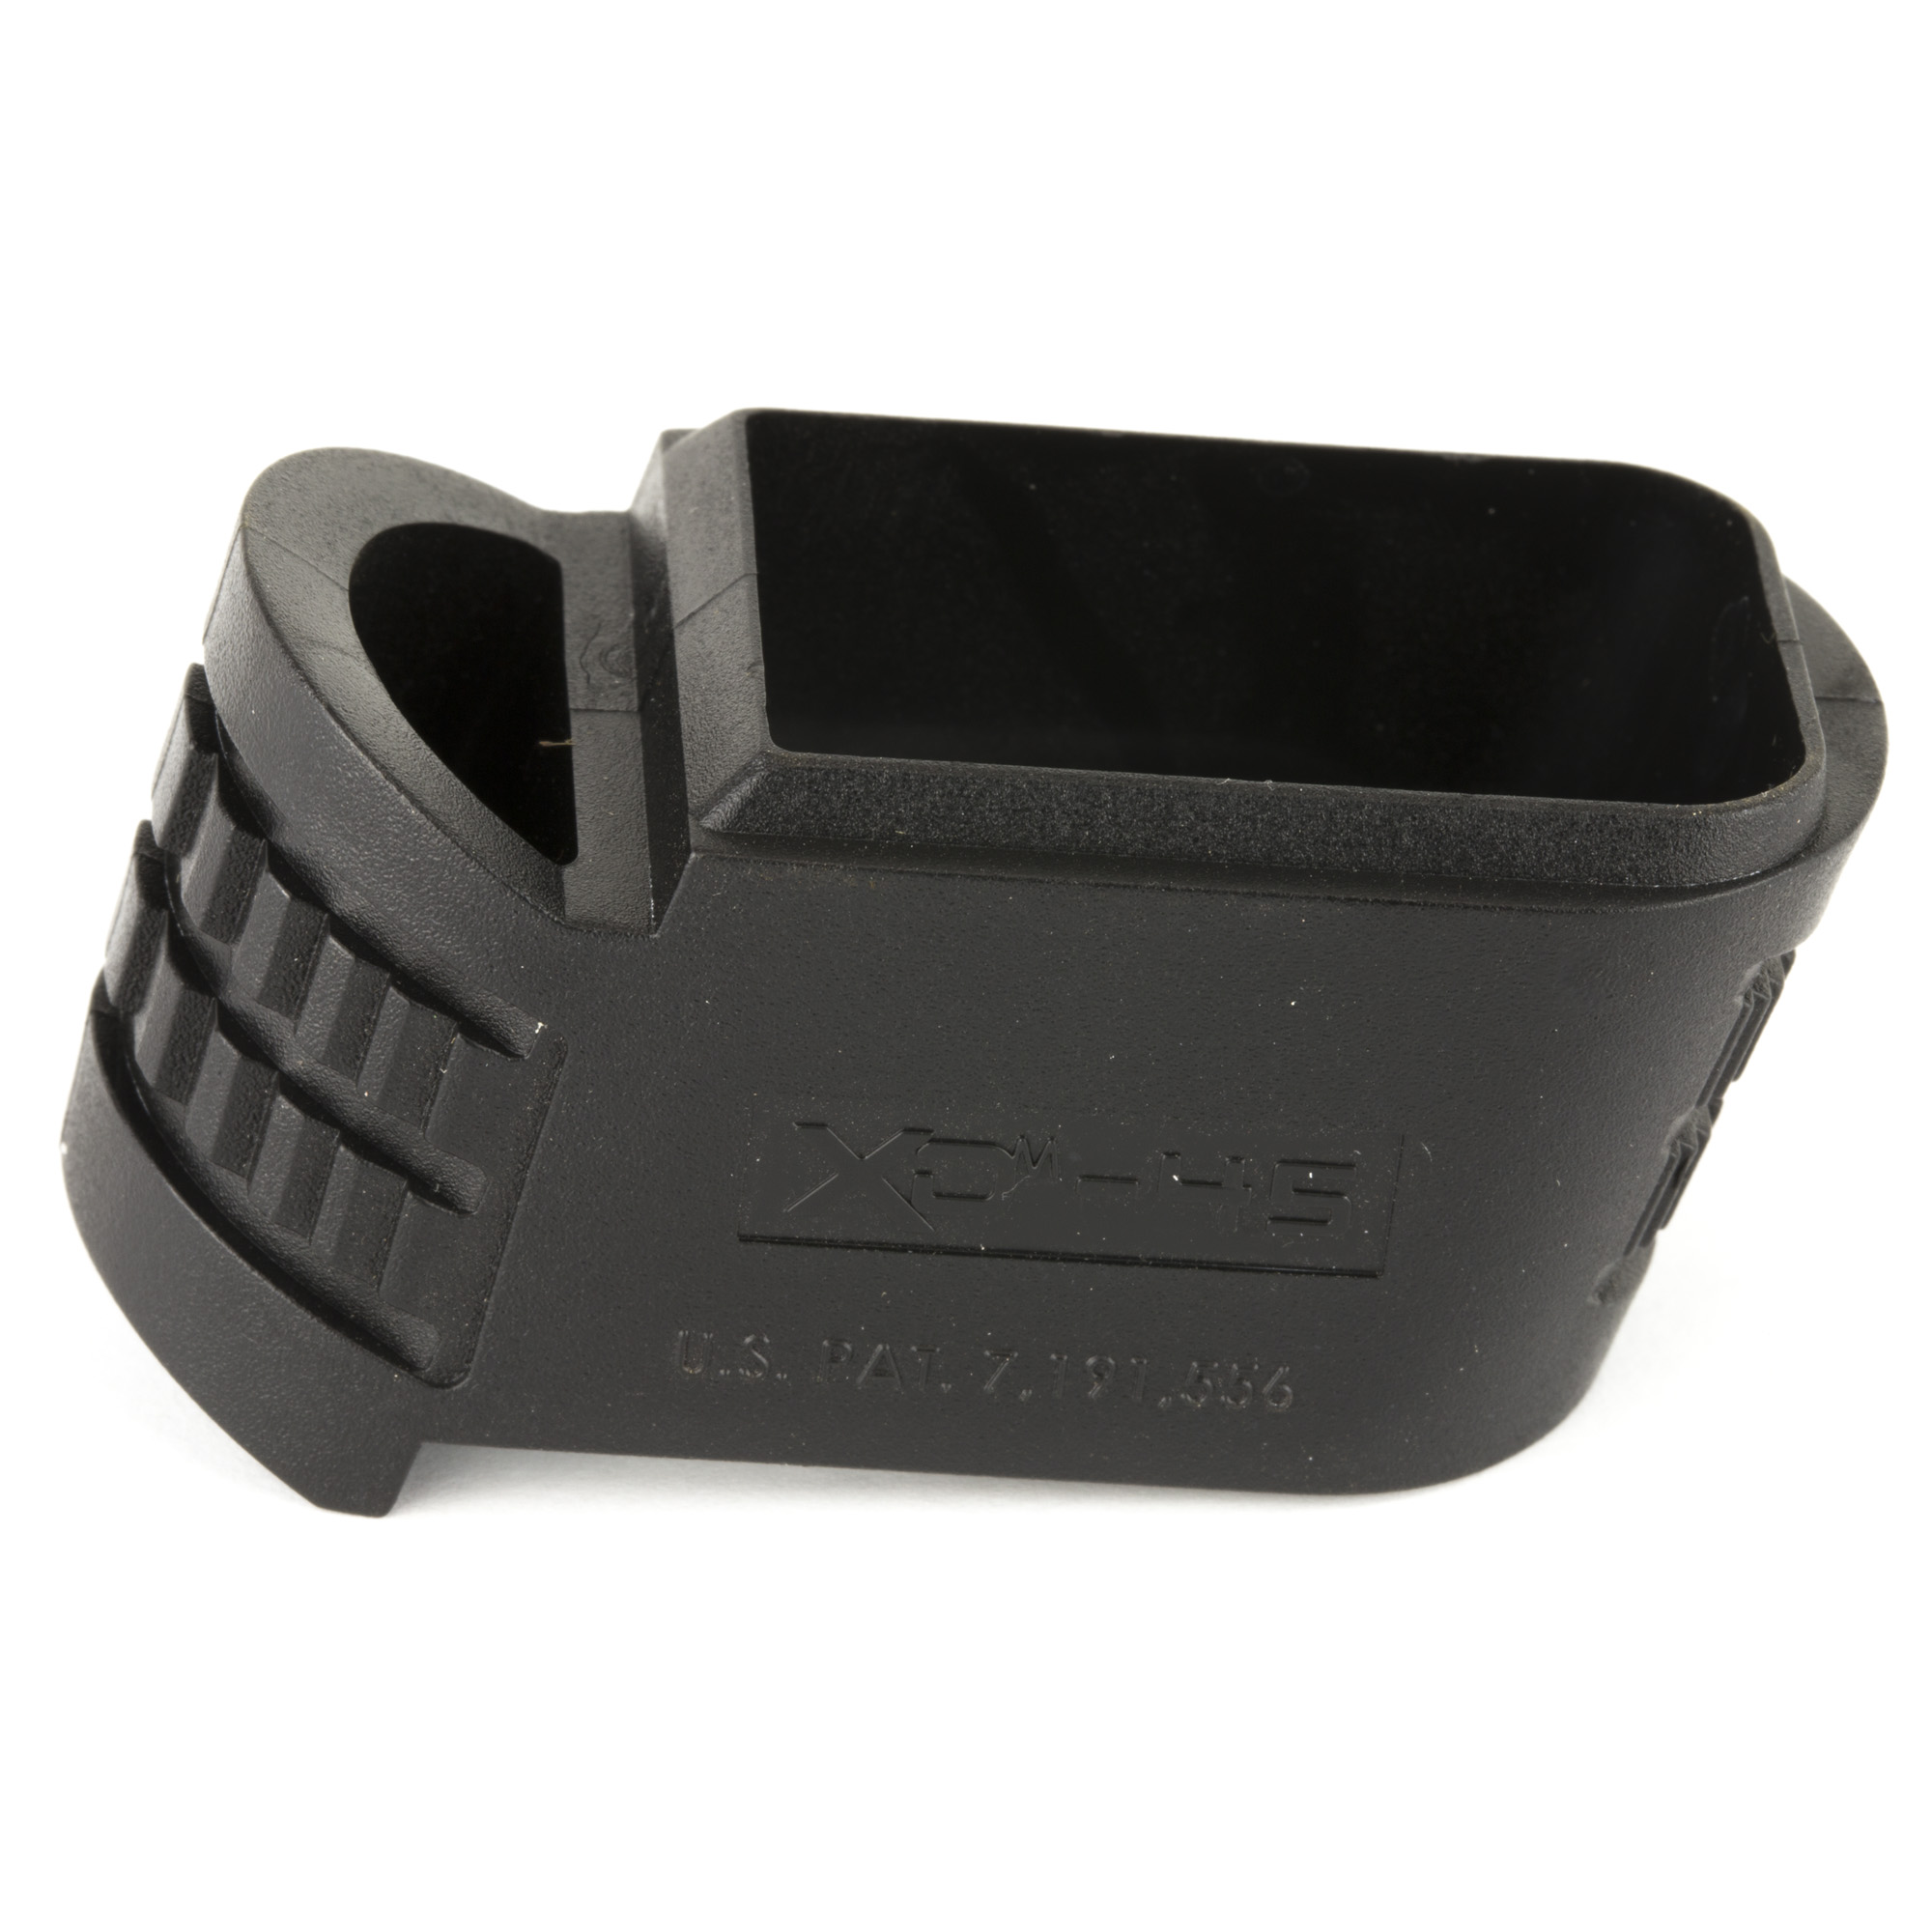 The X-Tension Sleeve fills in the gap between the extended magazine base plate and the grip when using high capacity magazines in the XD(M) 45ACP Compact.